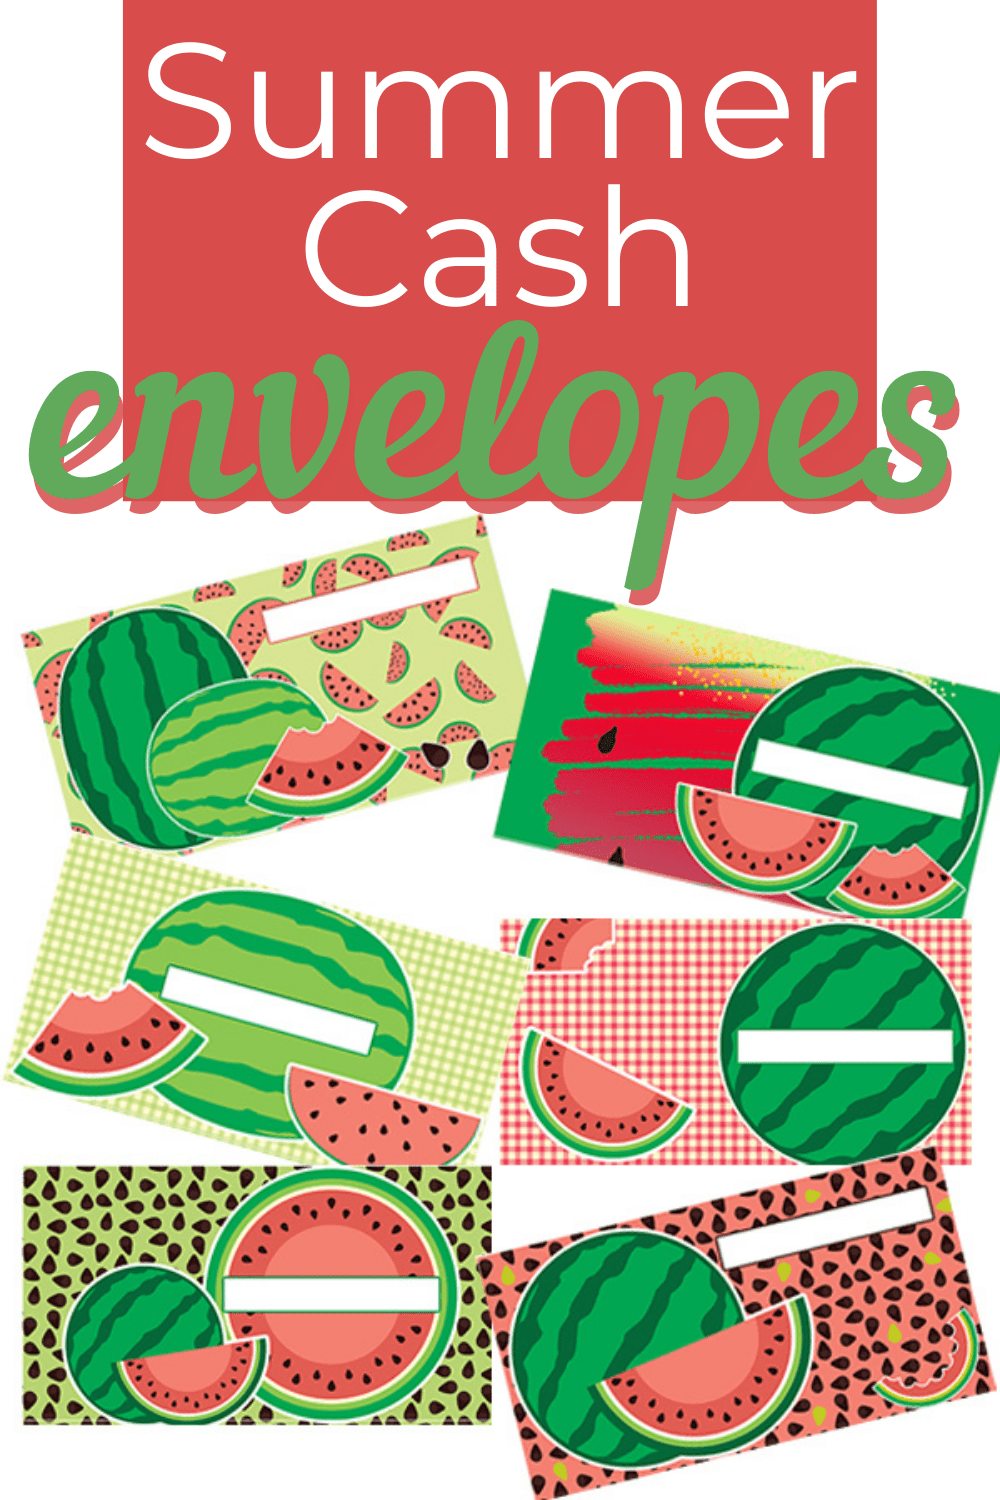 Check out these summer-themed cash envelope templates available today. Cash budget and stay organized this summer with these fun collections. via @mystayathome